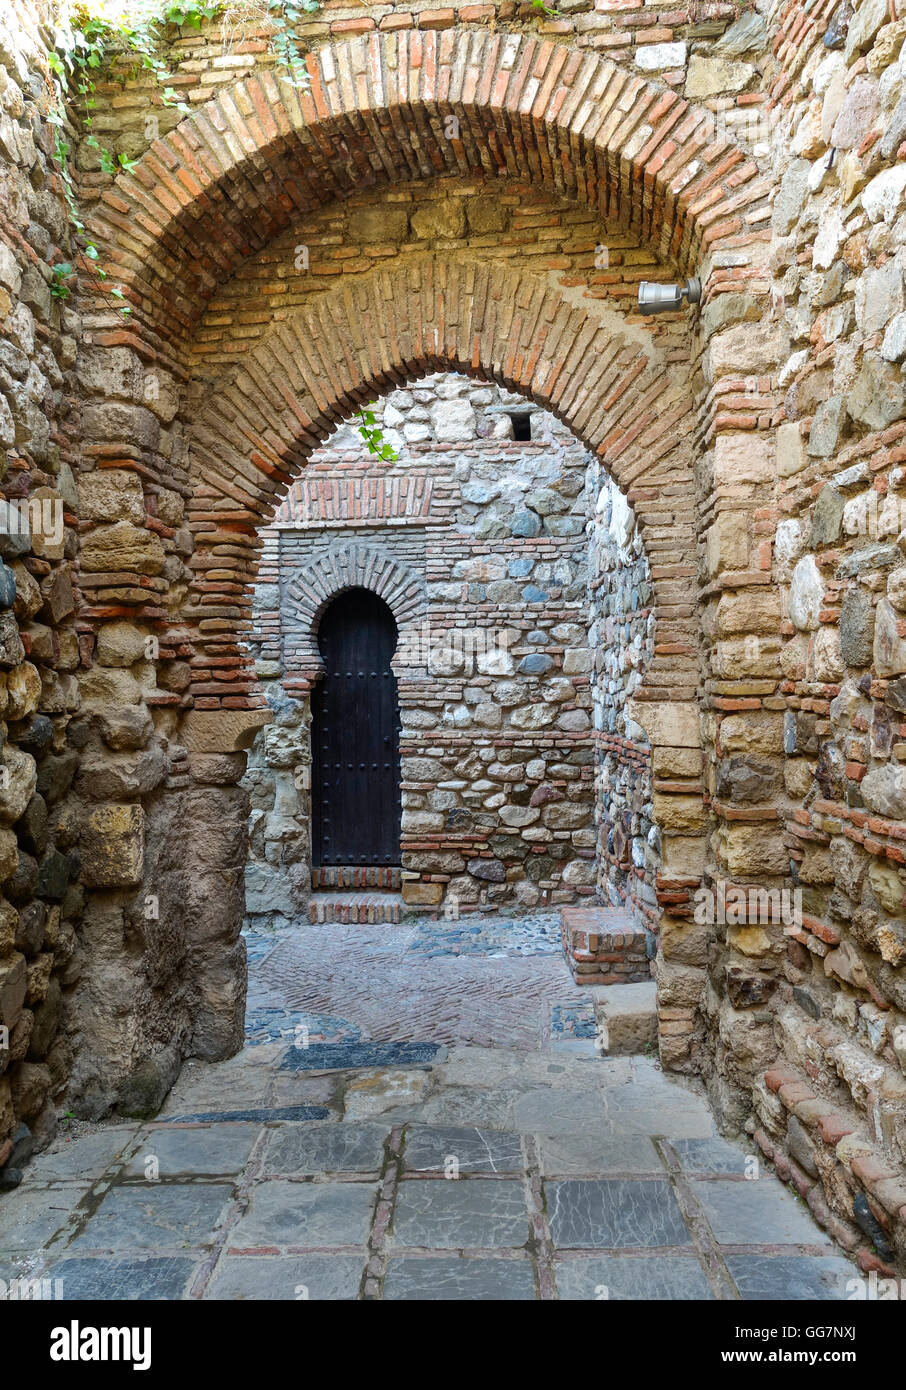 Ancient walls and horsehoe arch moorish doors Alcazaba Malaga Andalusia Spain. & Ancient walls and horsehoe arch moorish doors Alcazaba Malaga ...